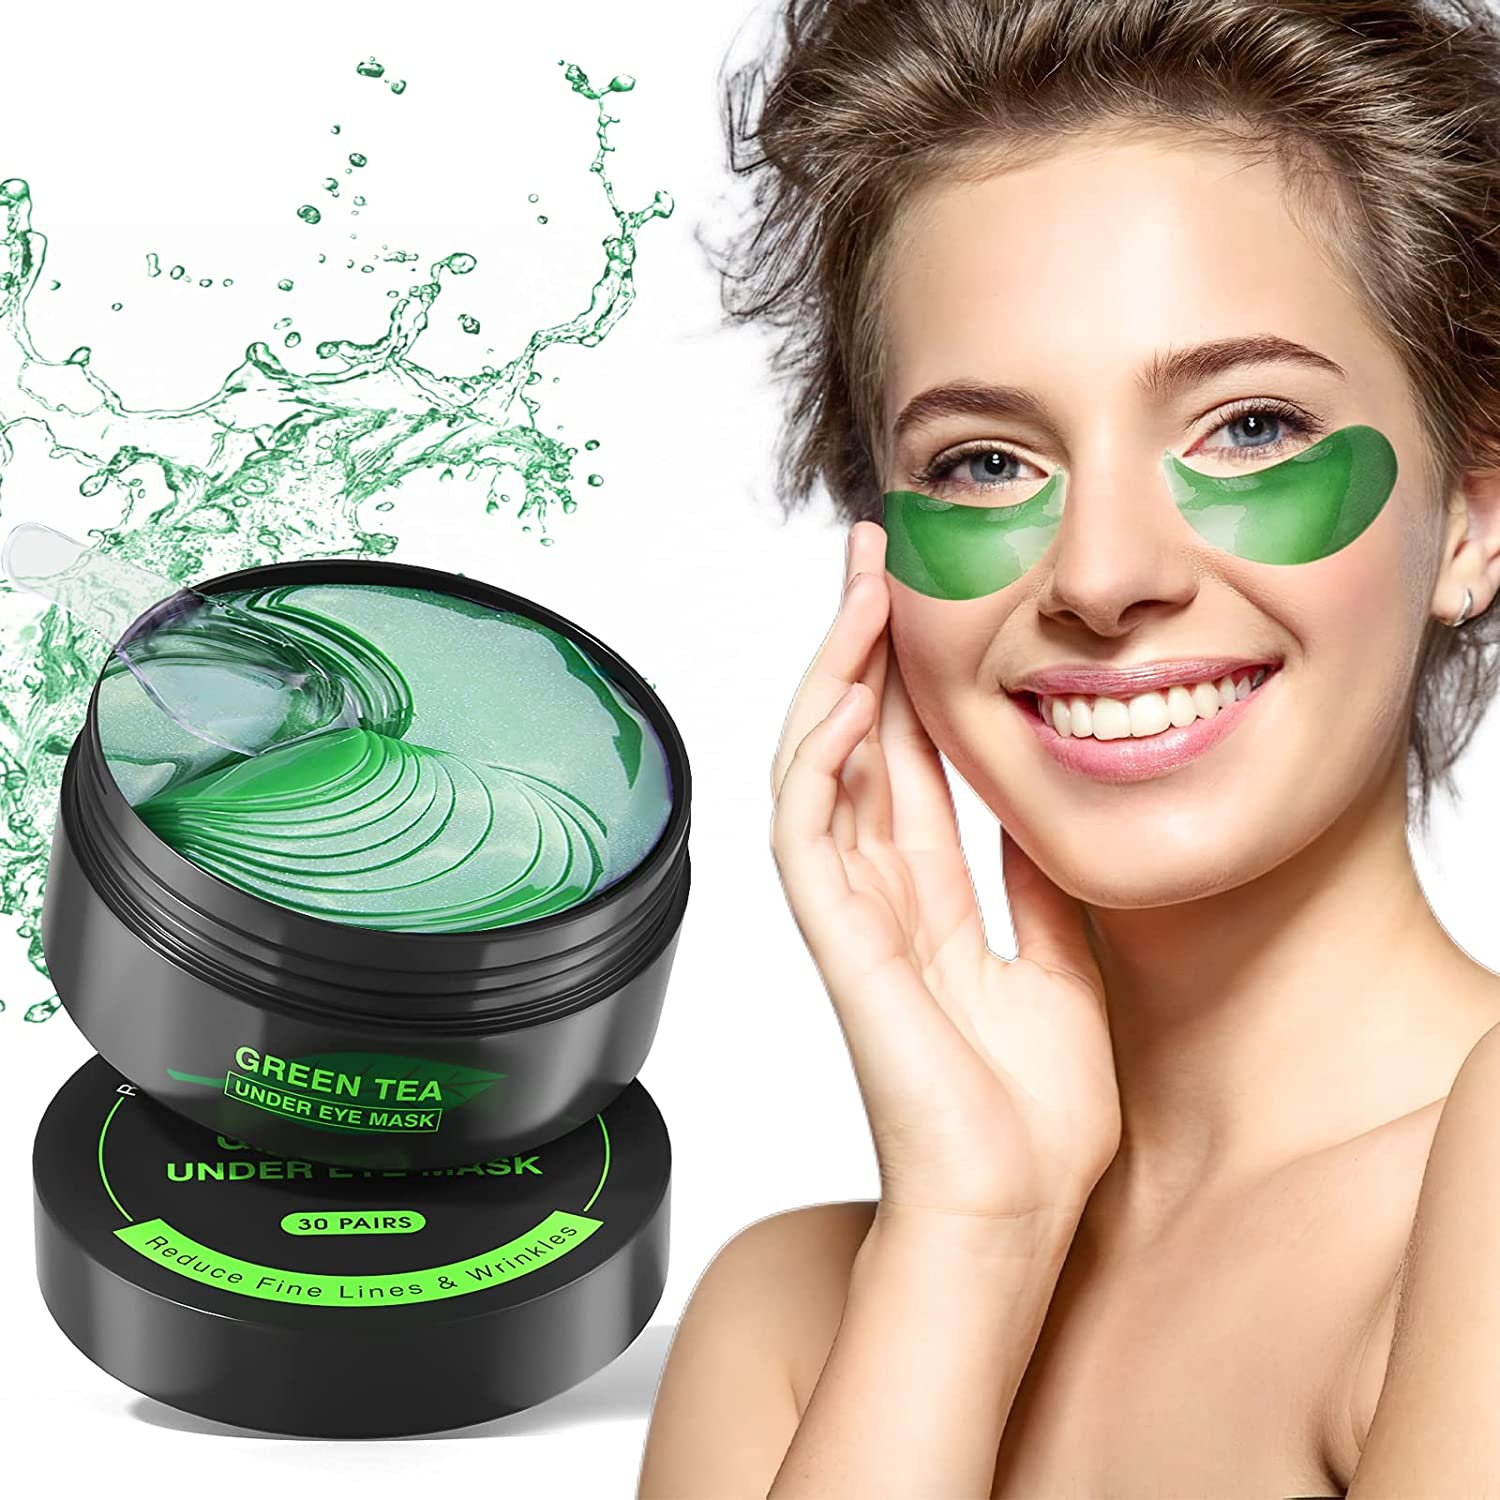 Collagen Under Eye Patches,30 Pairs Under Eye Gel Pads Eye Mask Treatment with Anti-Aging Hyaluronic Acid For Moisturizing & Reducing Dark Circles Puffiness Wrinkles Fine Lines for Women and Men : Beauty & Personal Care